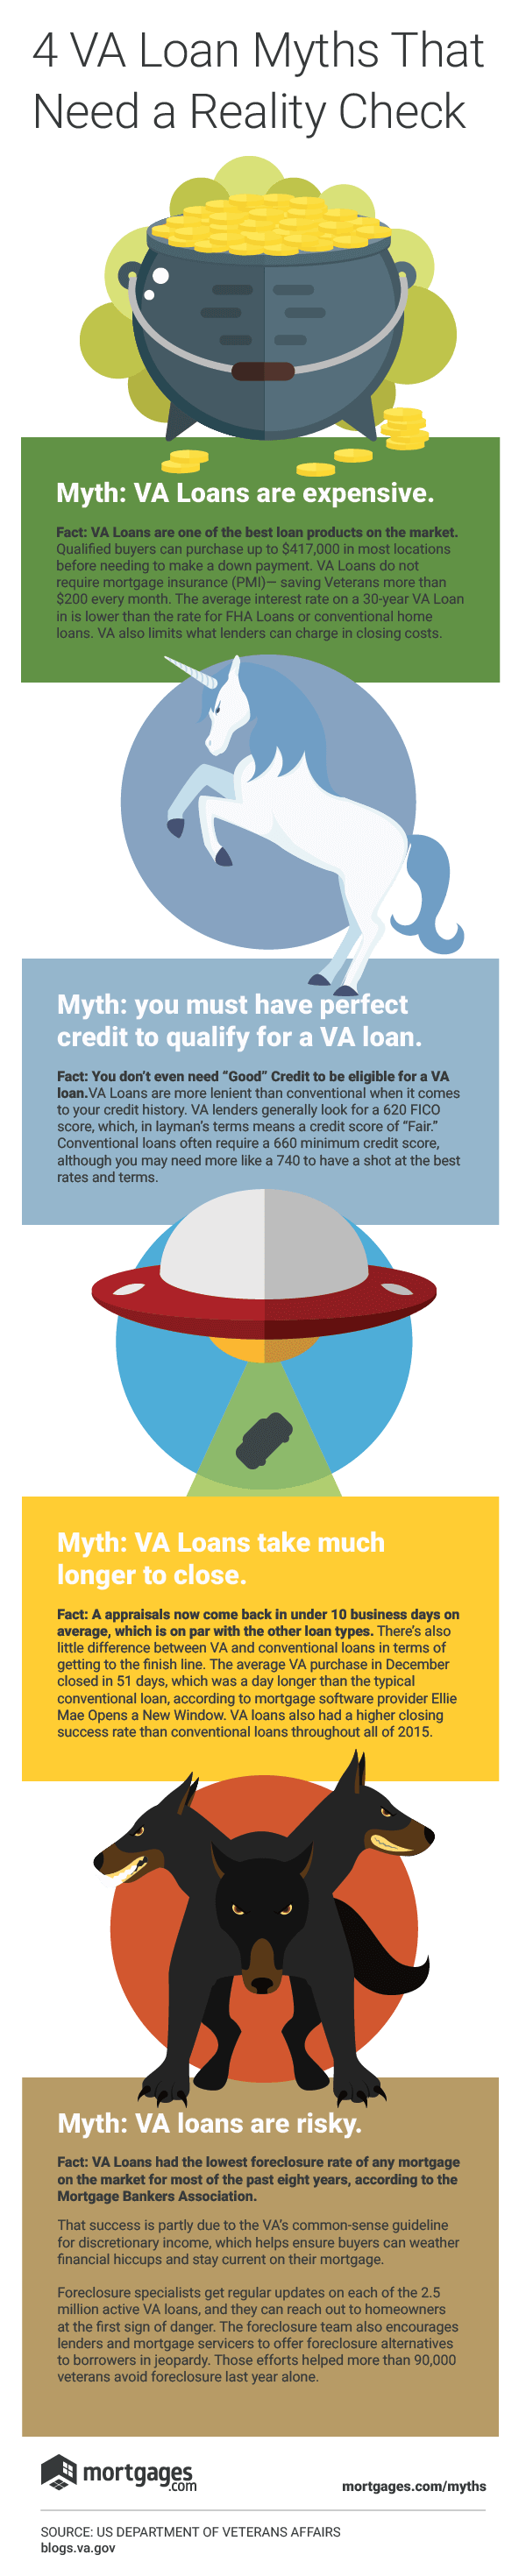 D0n't be misled by these VA Loan Myths